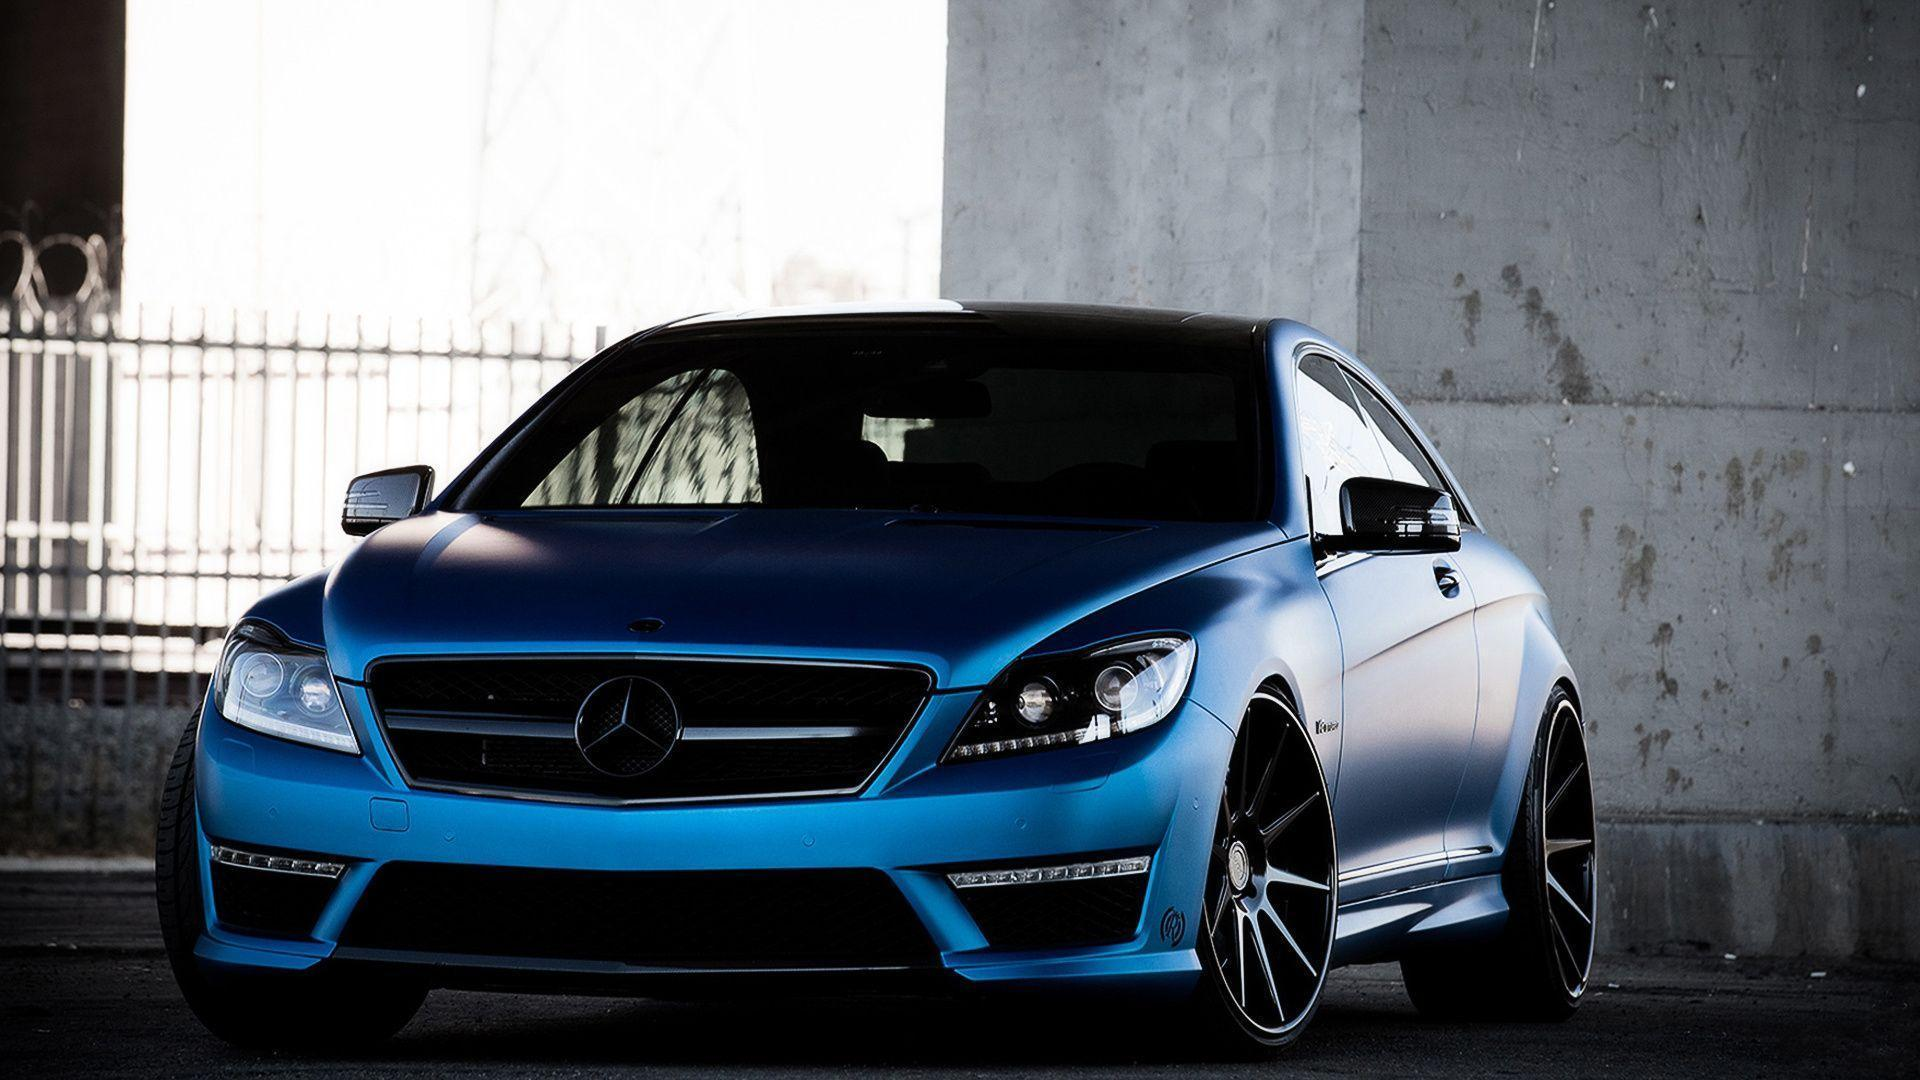 1 Mercedes Benz Cl63 Amg HD Wallpapers